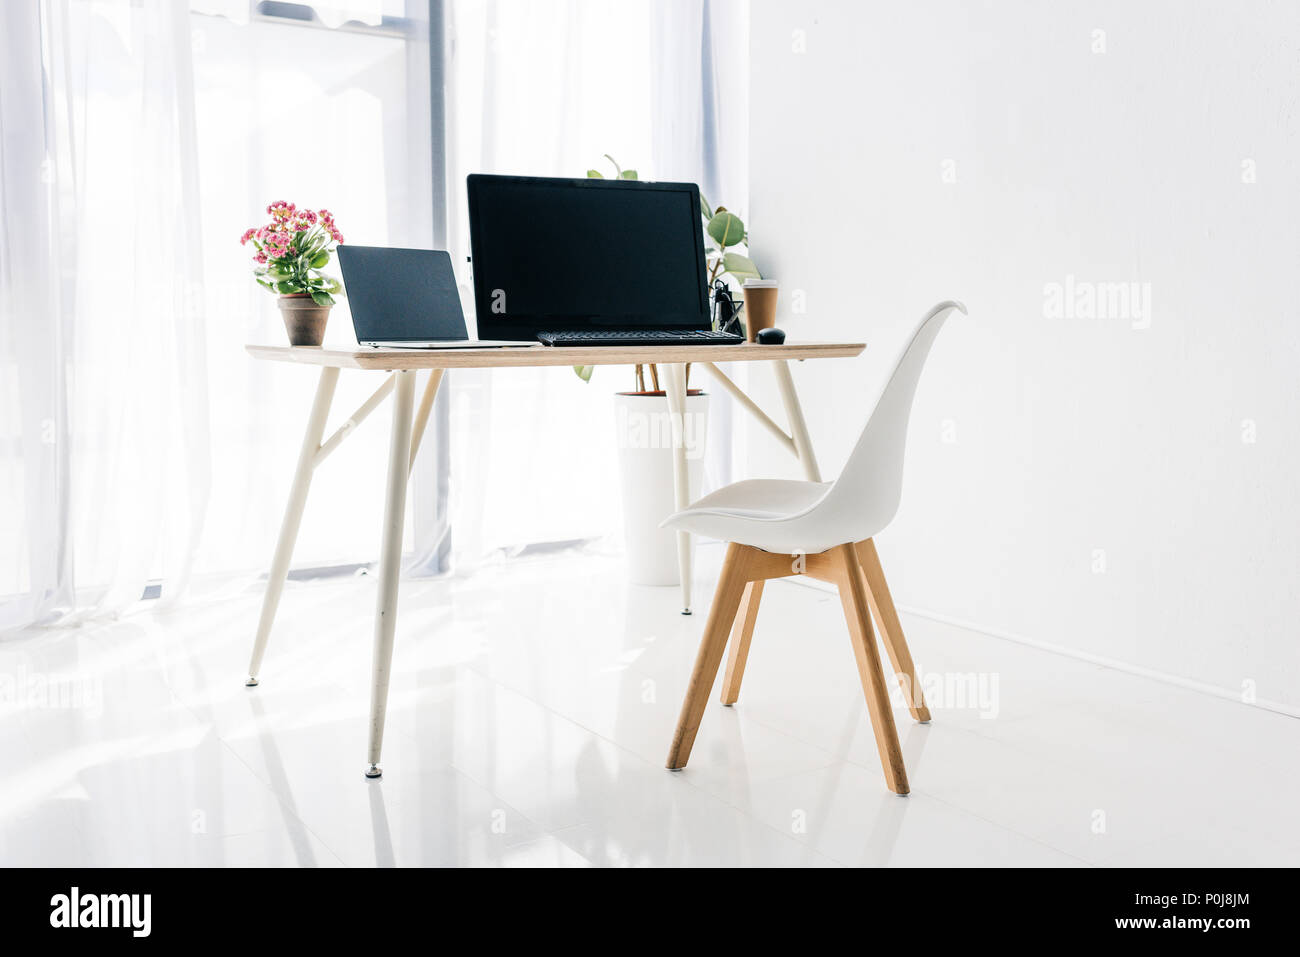 interior of workplace with chair, potted plants, laptop and computer on table - Stock Image